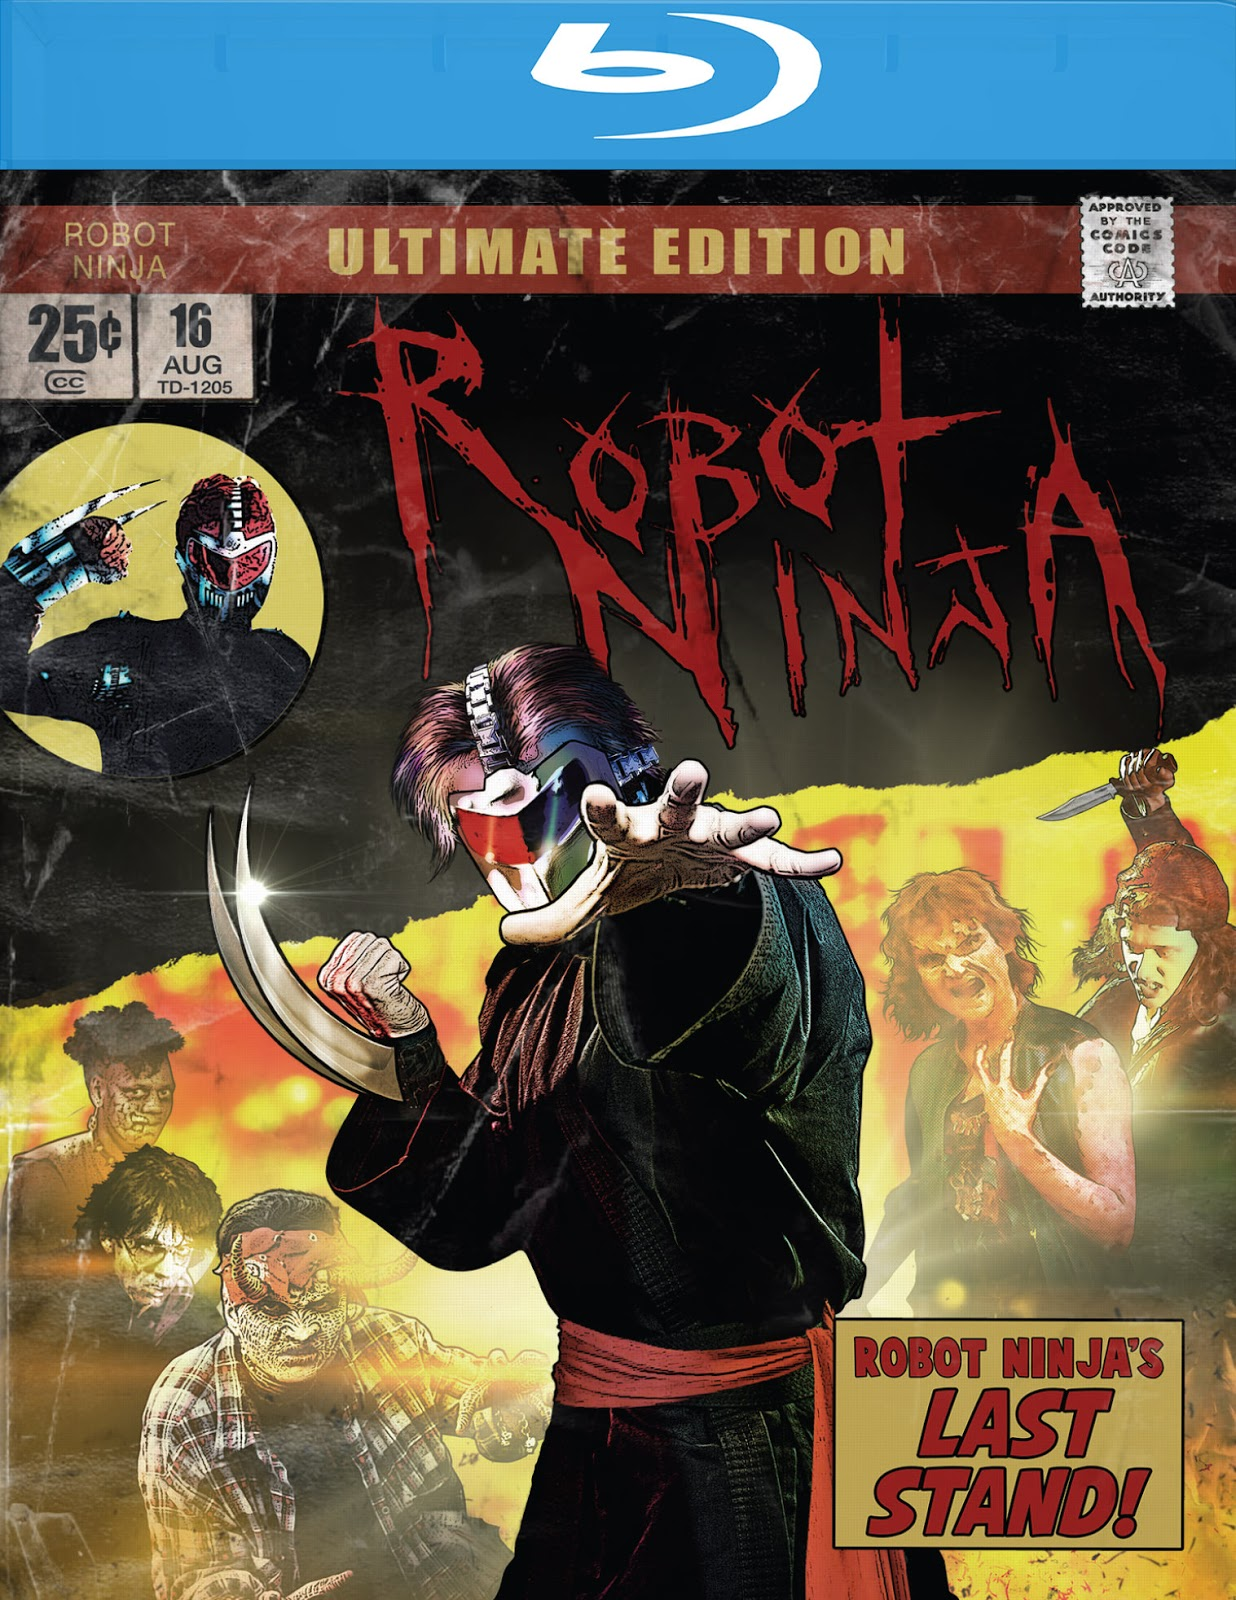 THE B-MOVIE NEWS VAULT: ROBOT NINJA Now Available on Ultimate